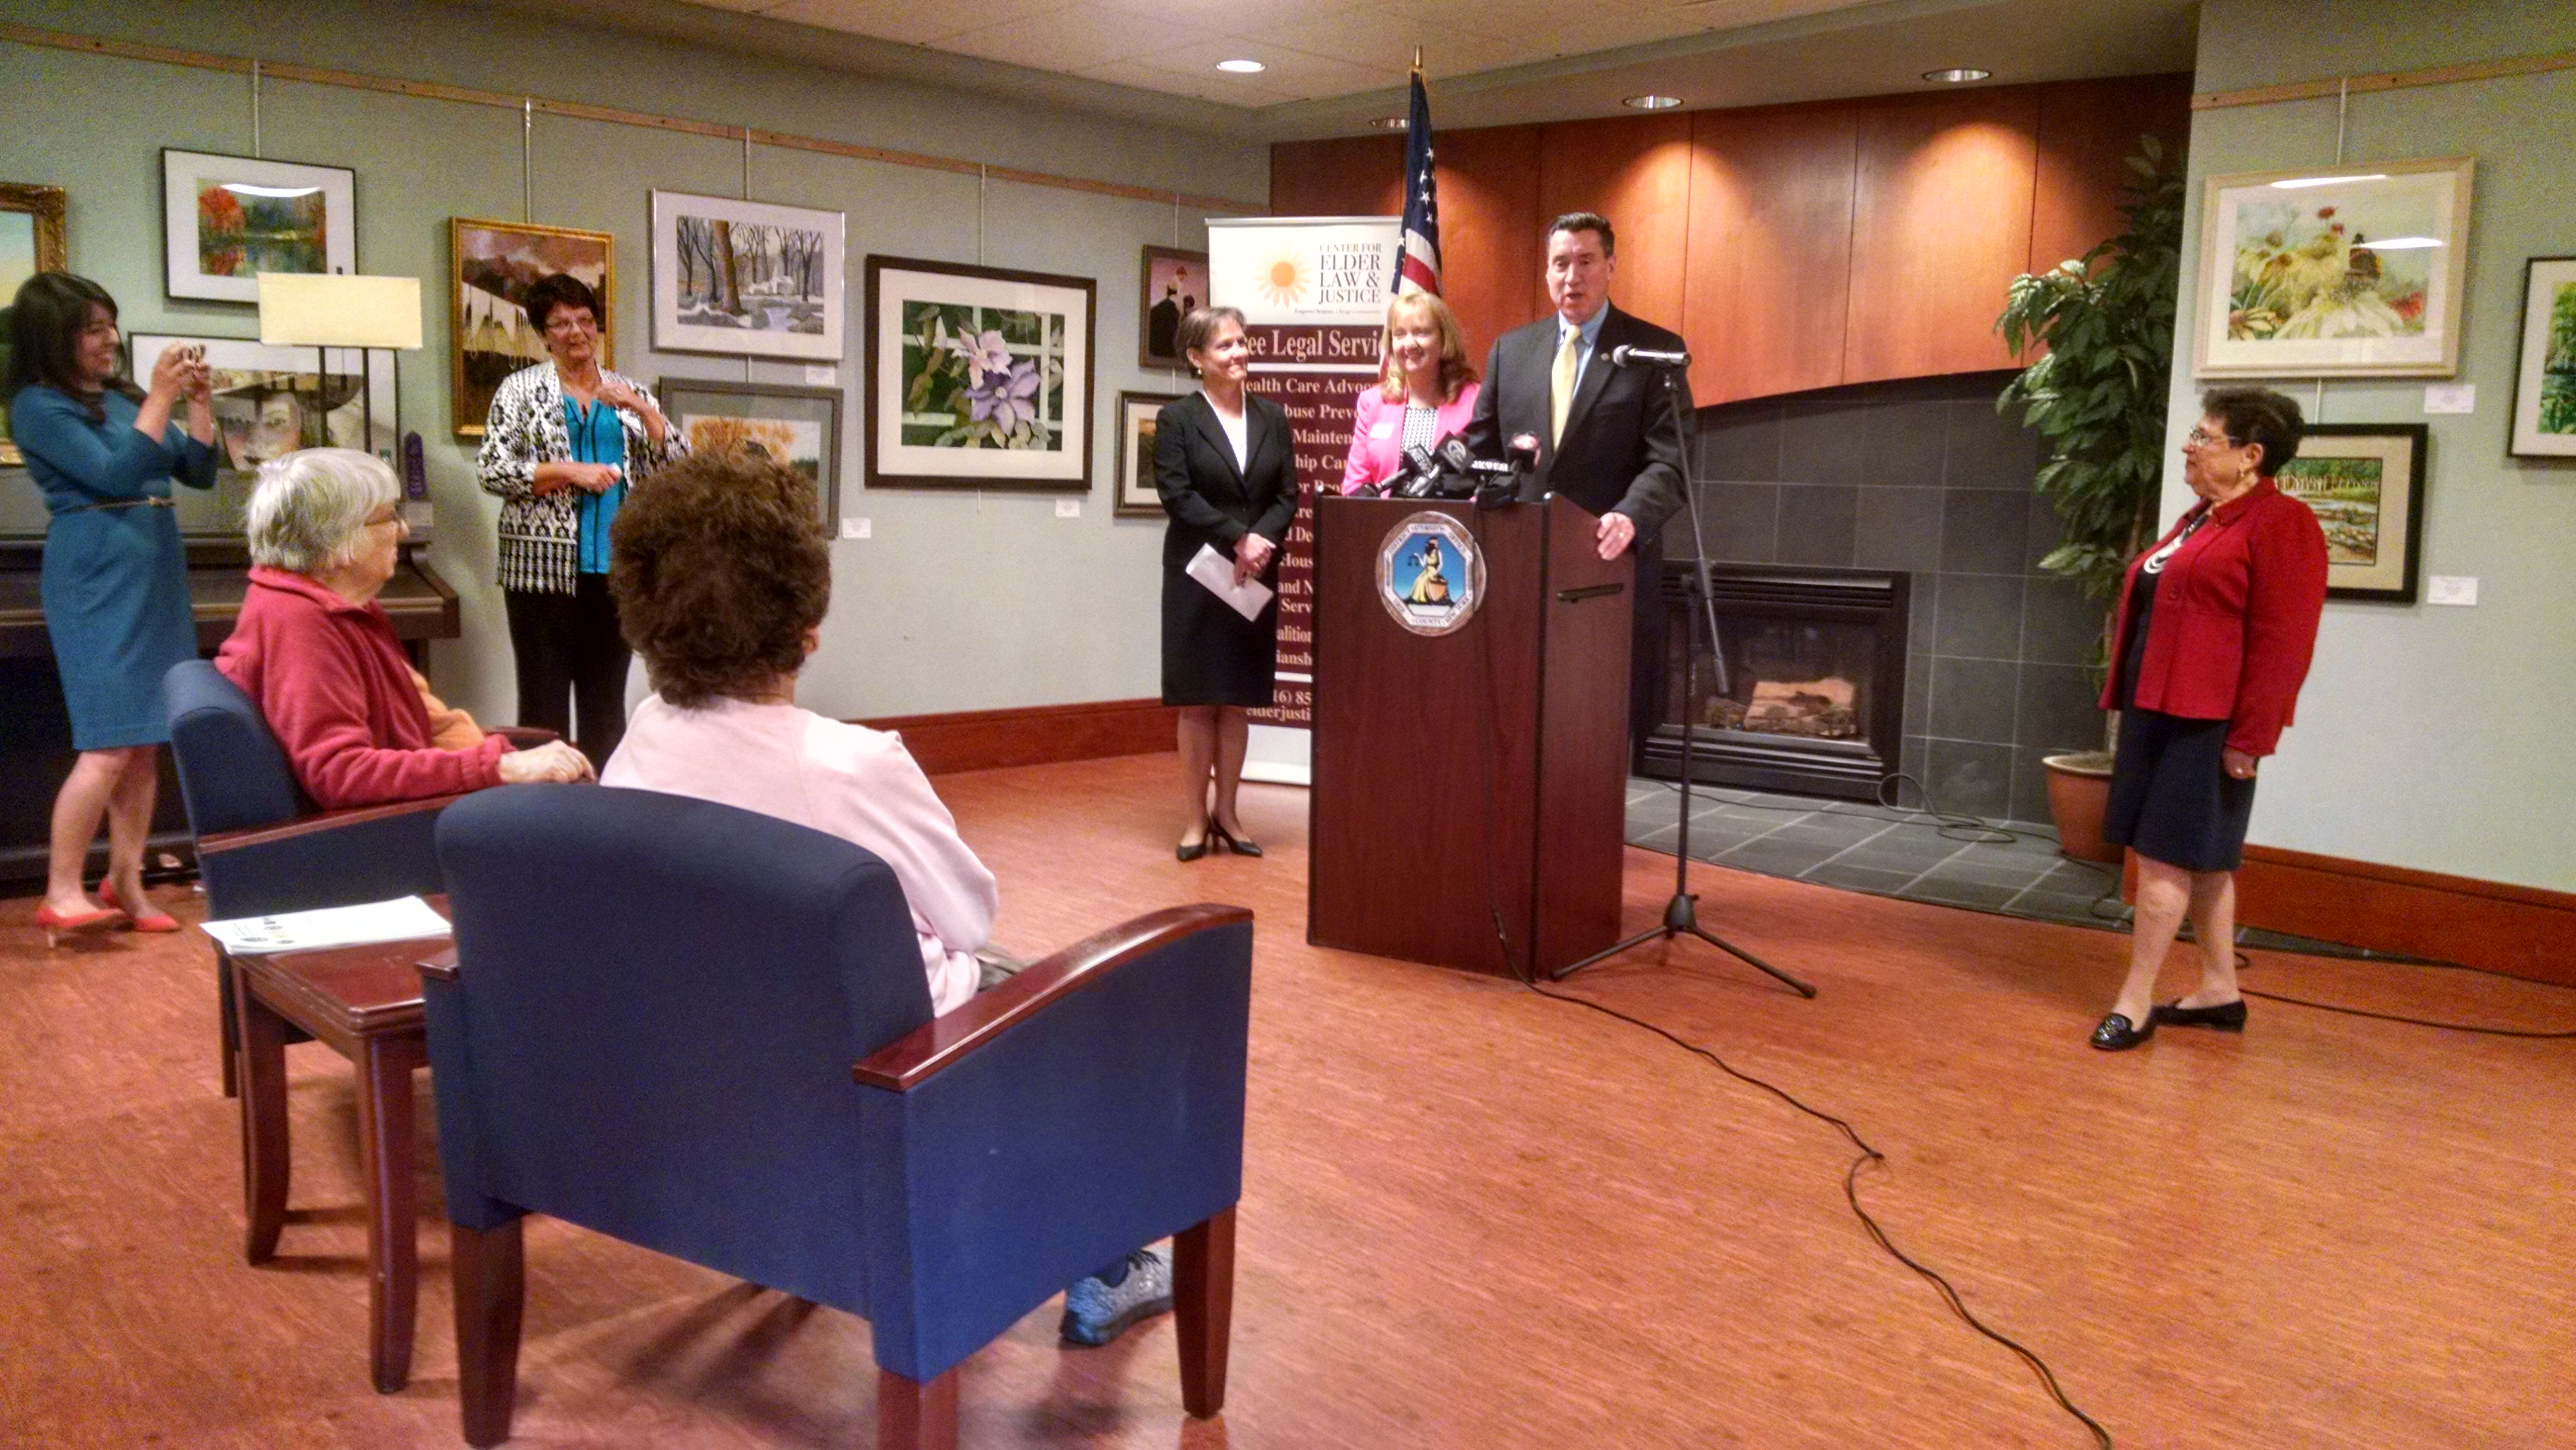 Erie County District Attorney John J. Flynn announces the creation of a task force to more aggressively pursue cases of suspected elder financial abuse Thursday in Amherst Senior Center.